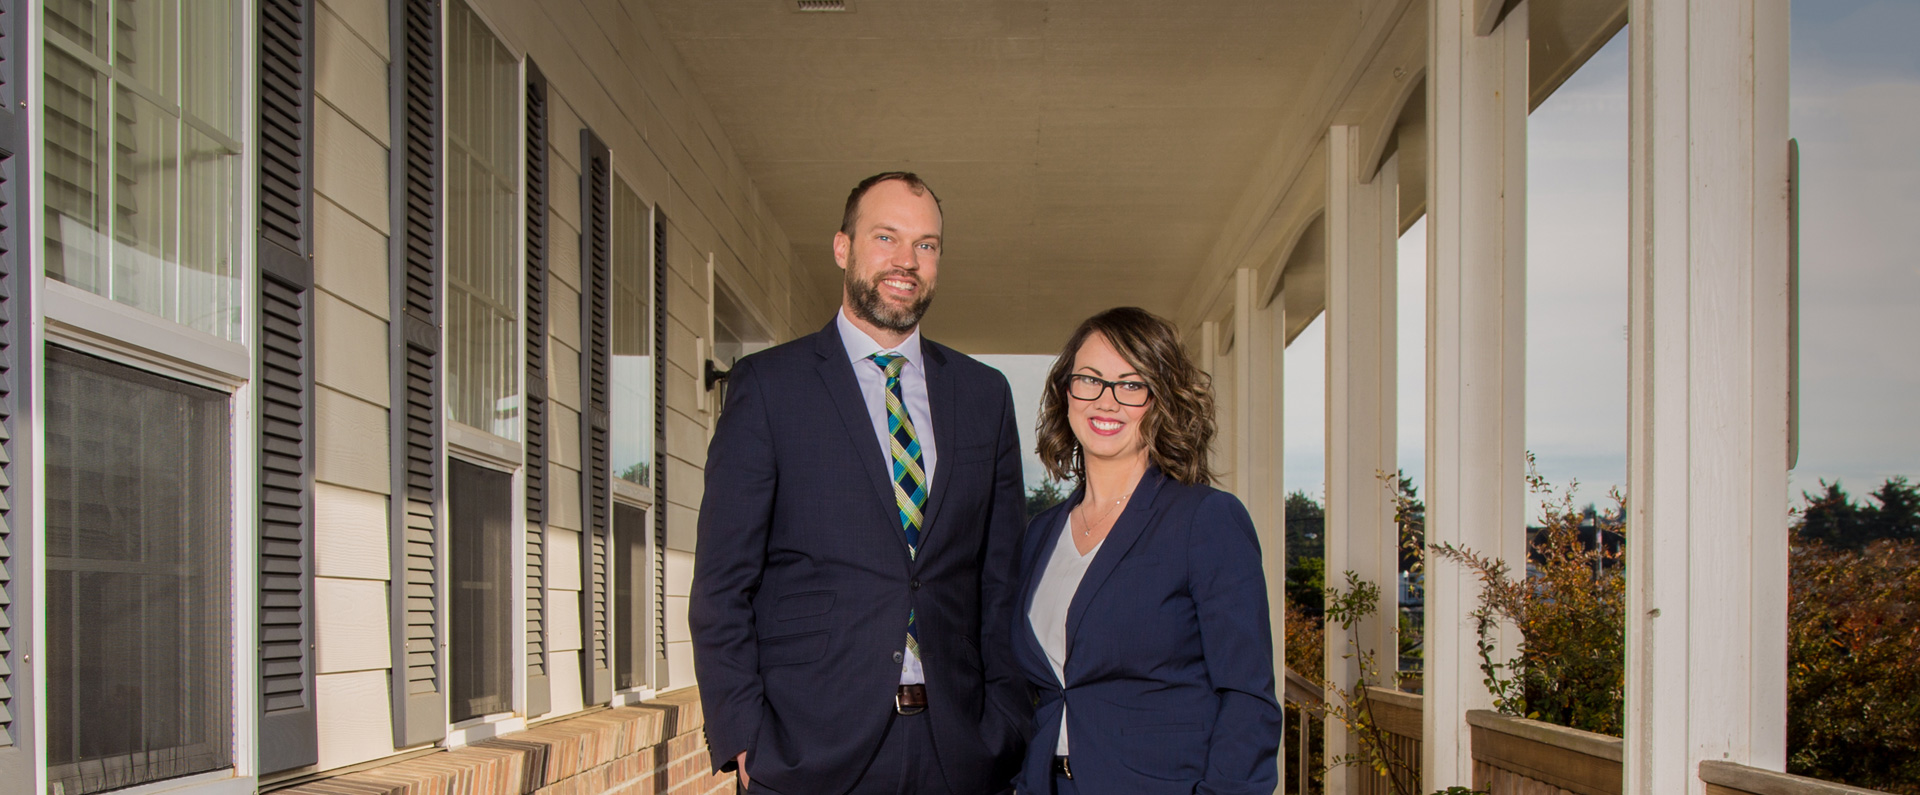 Adam and Traci amazing legal team newport oregon lincoln county